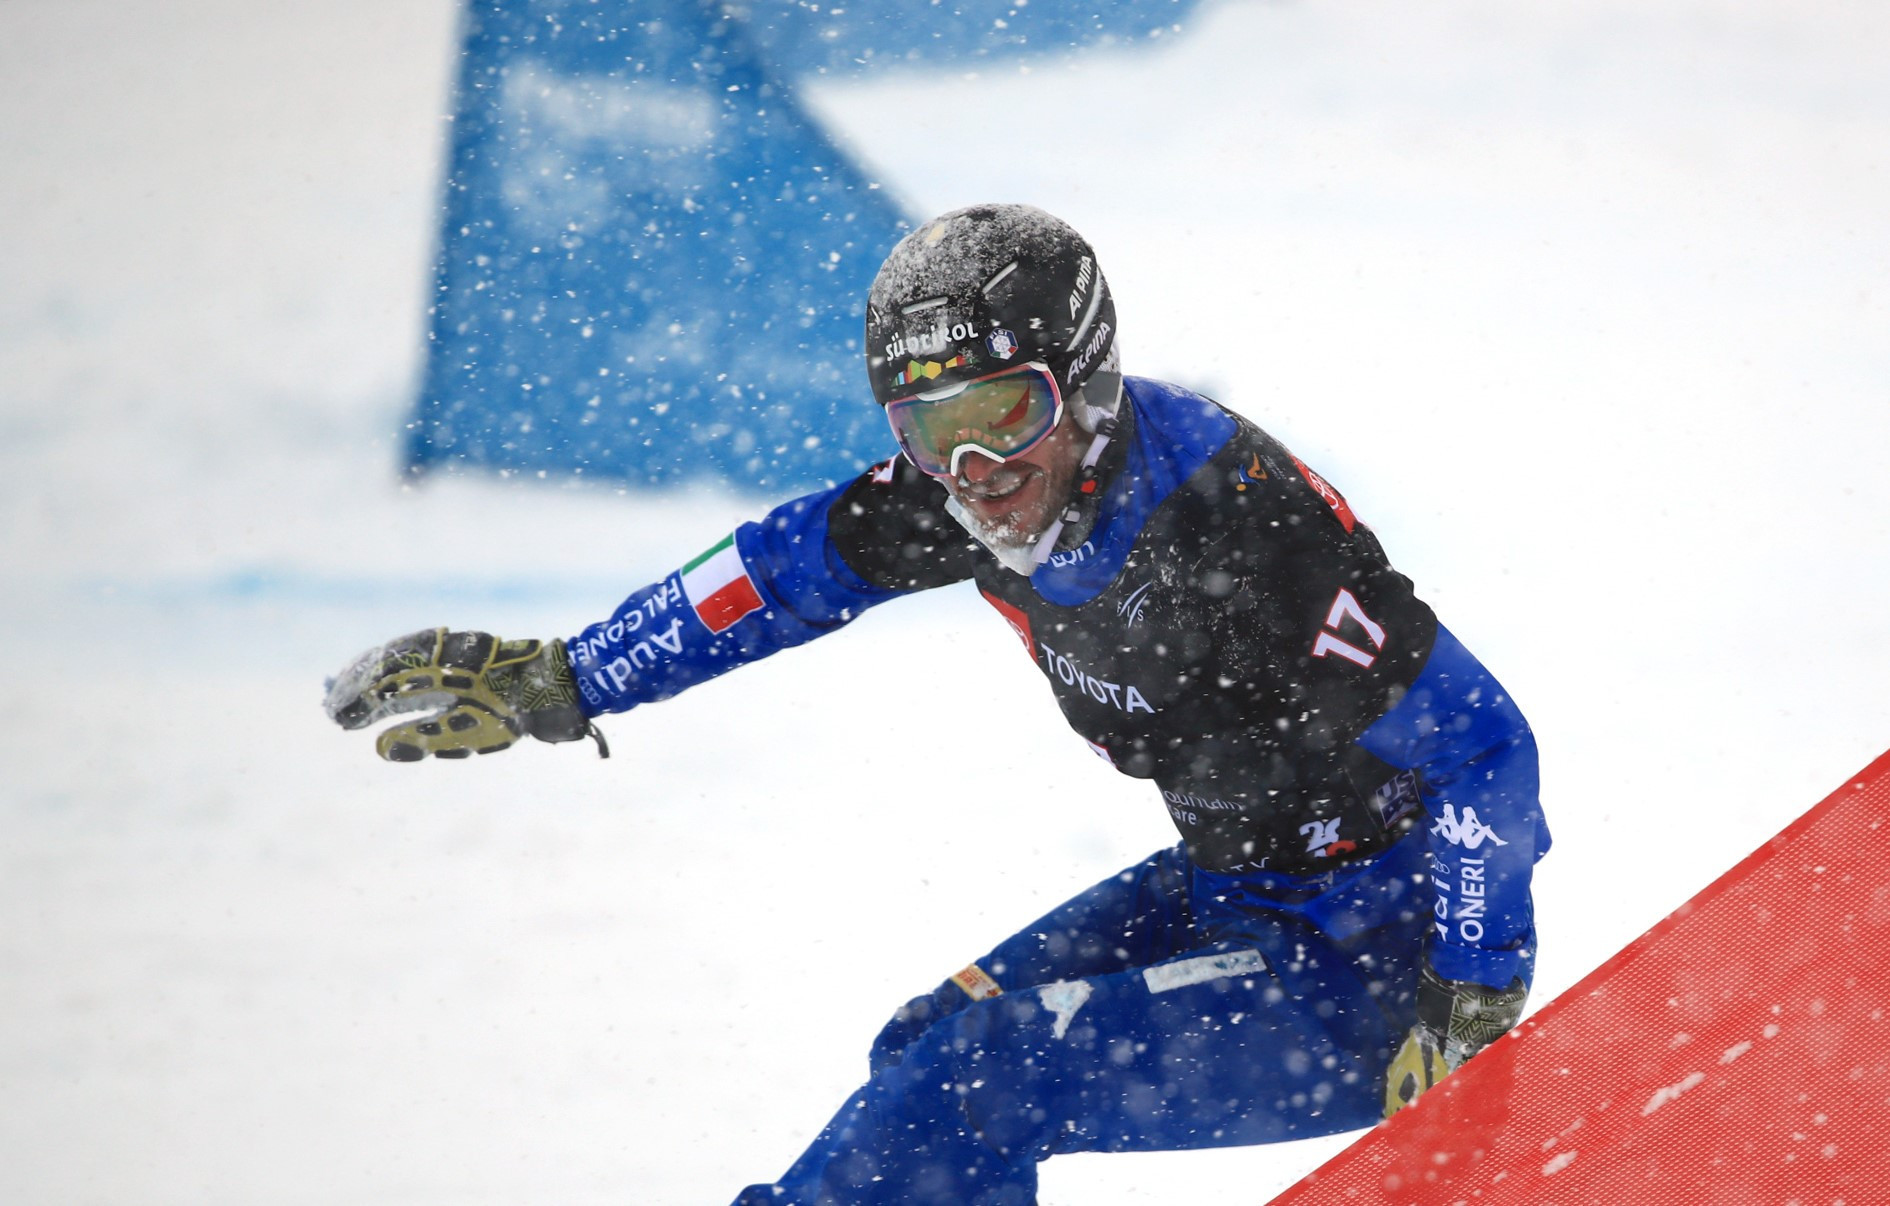 Nadyrshina and March win first parallel slalom races of Snowboard World Cup season